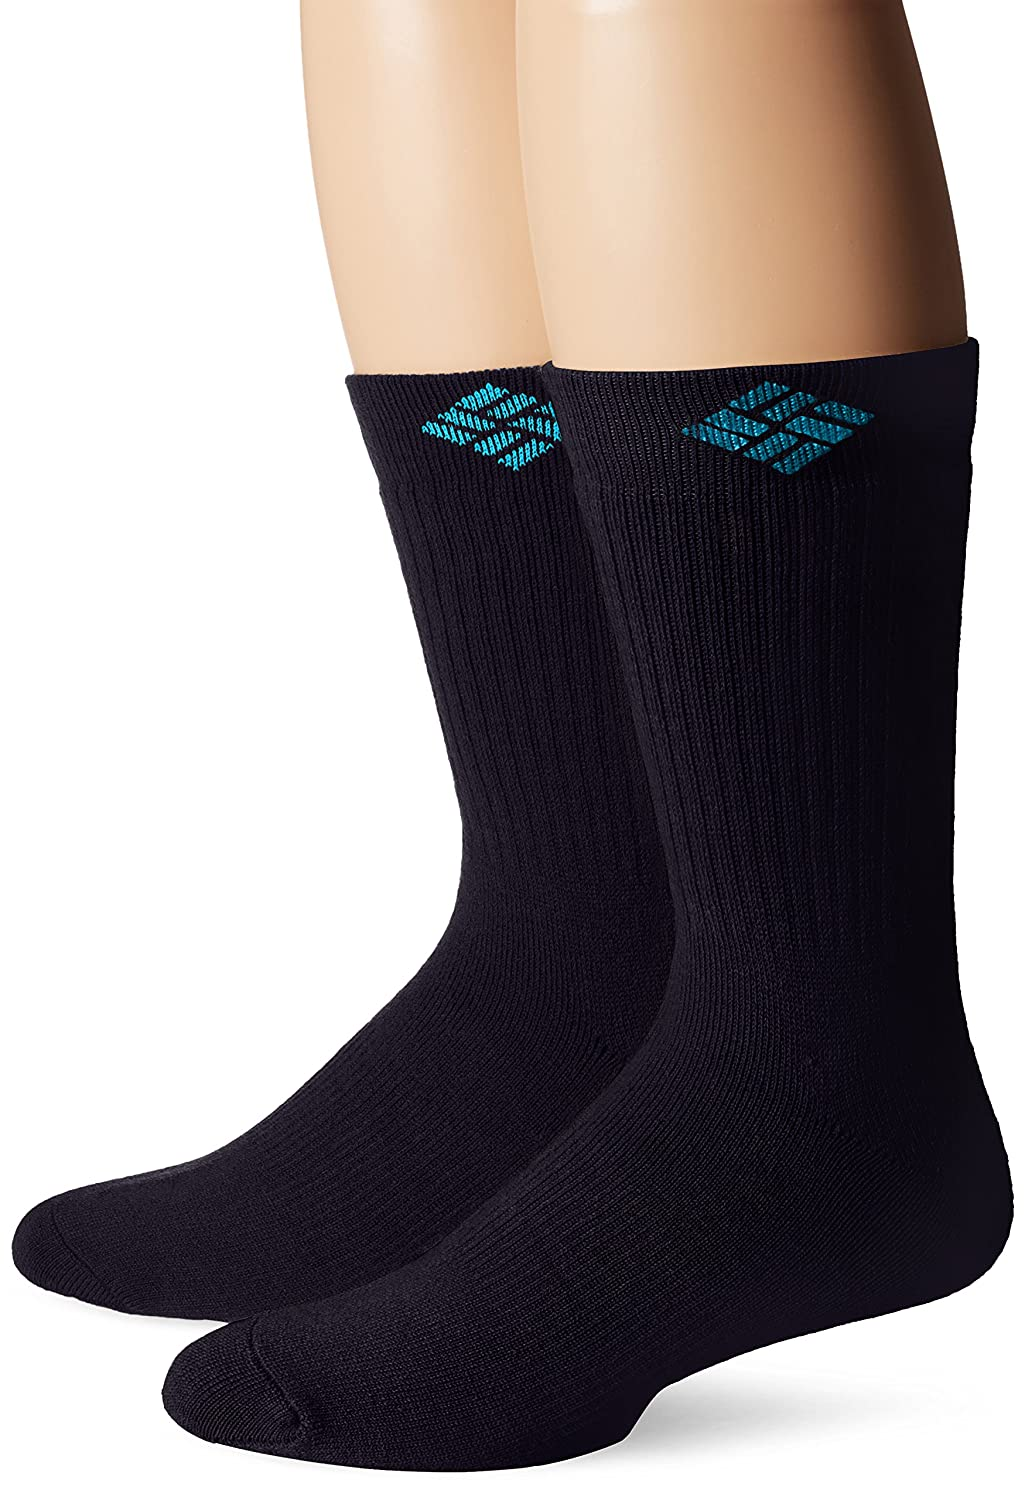 Columbia Men's Wool Crew Socks, Navy, 10-13 Sock Size (Shoe Size 6-12) Columbia Men' s Socks RCS210MUSBK12PR